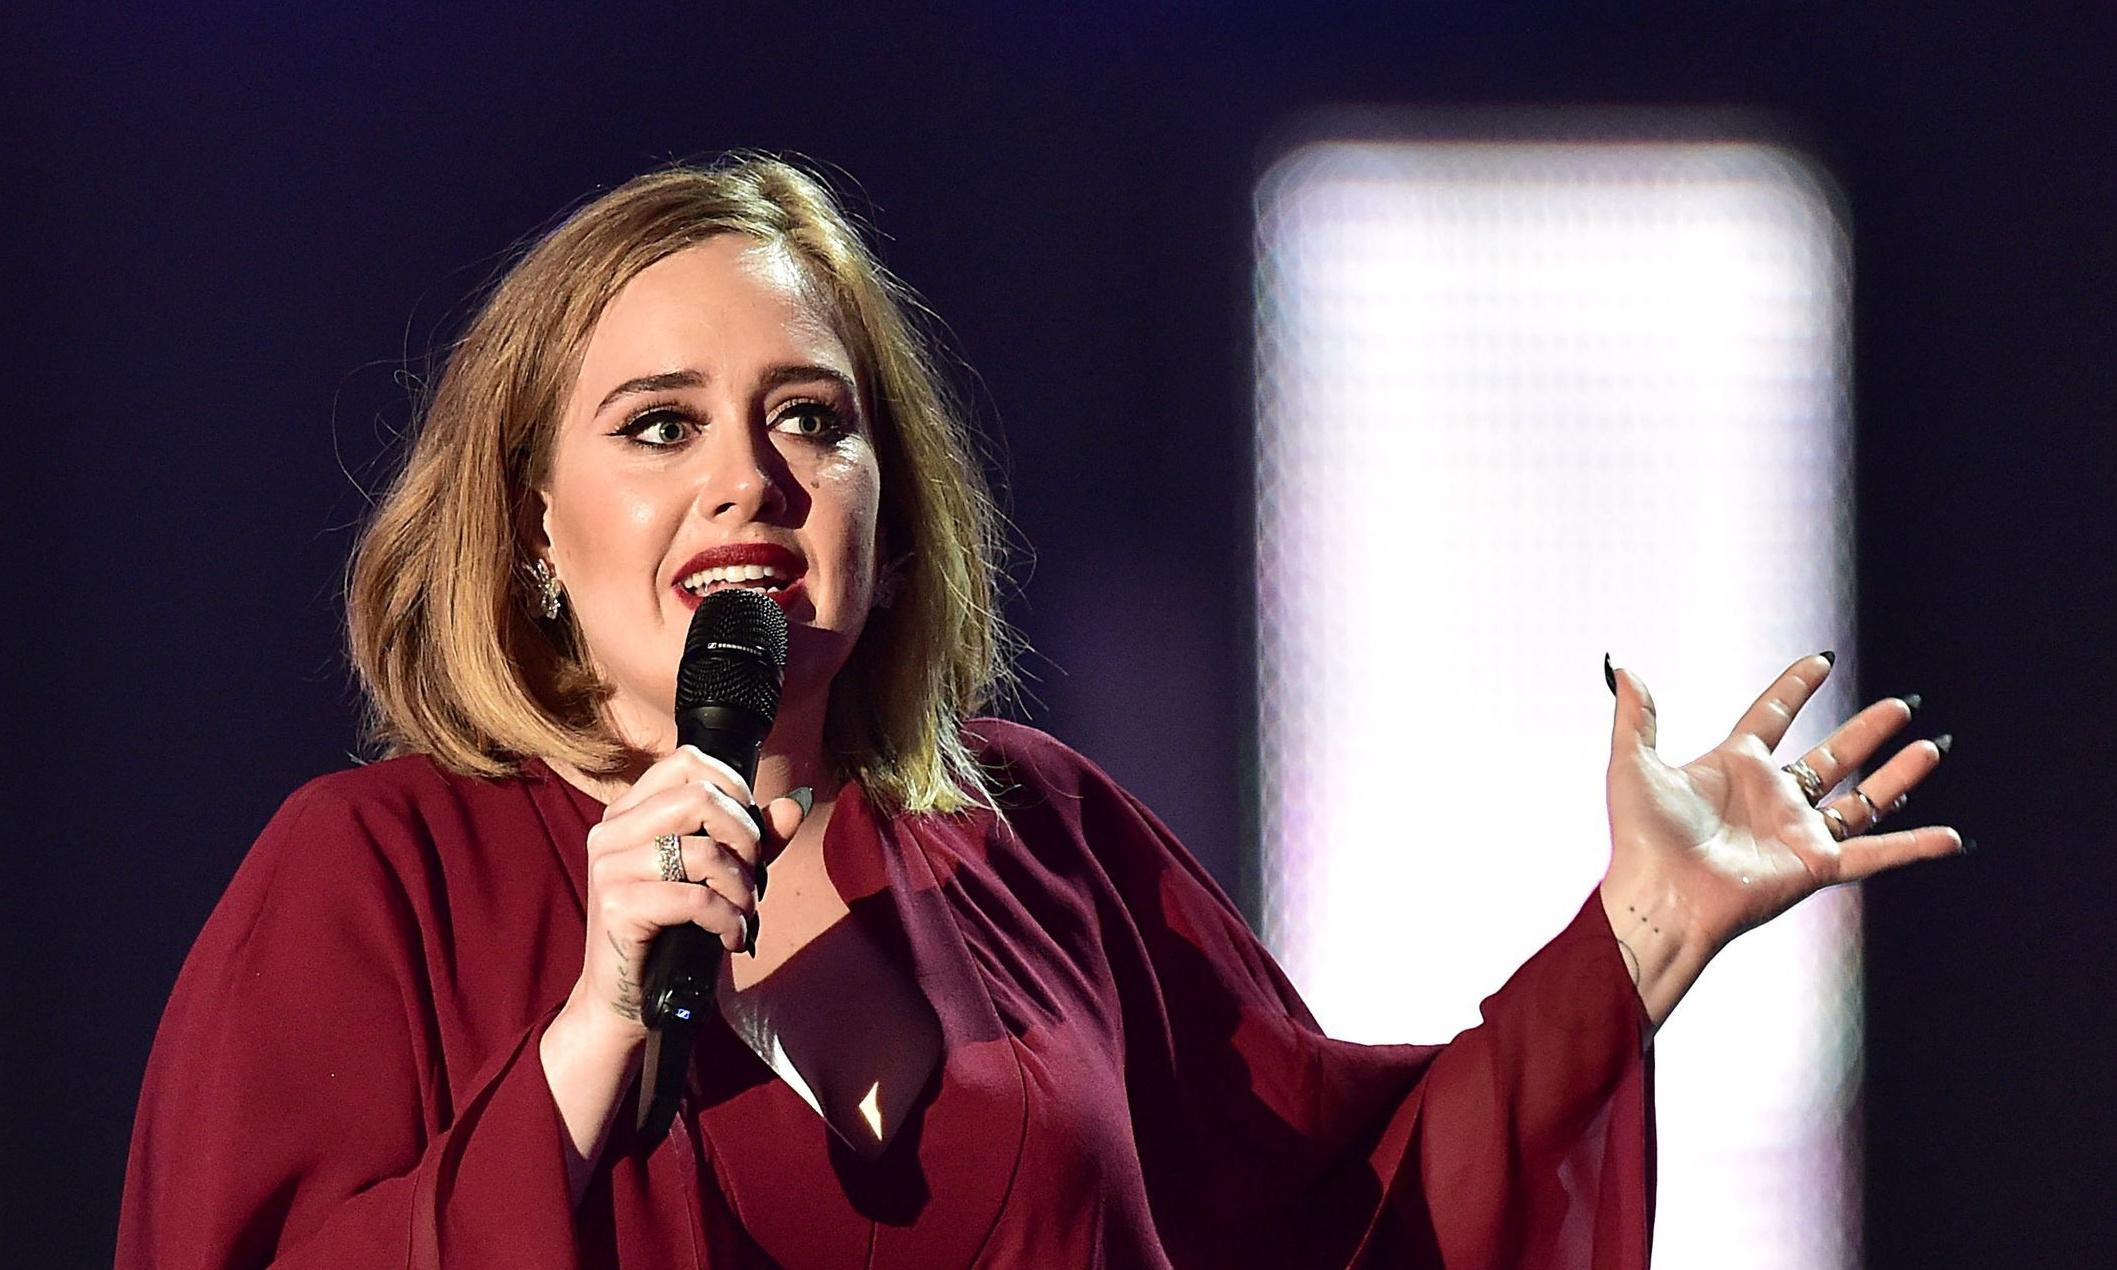 The excitement over Adele's marriage breakdown is ugly and unkind